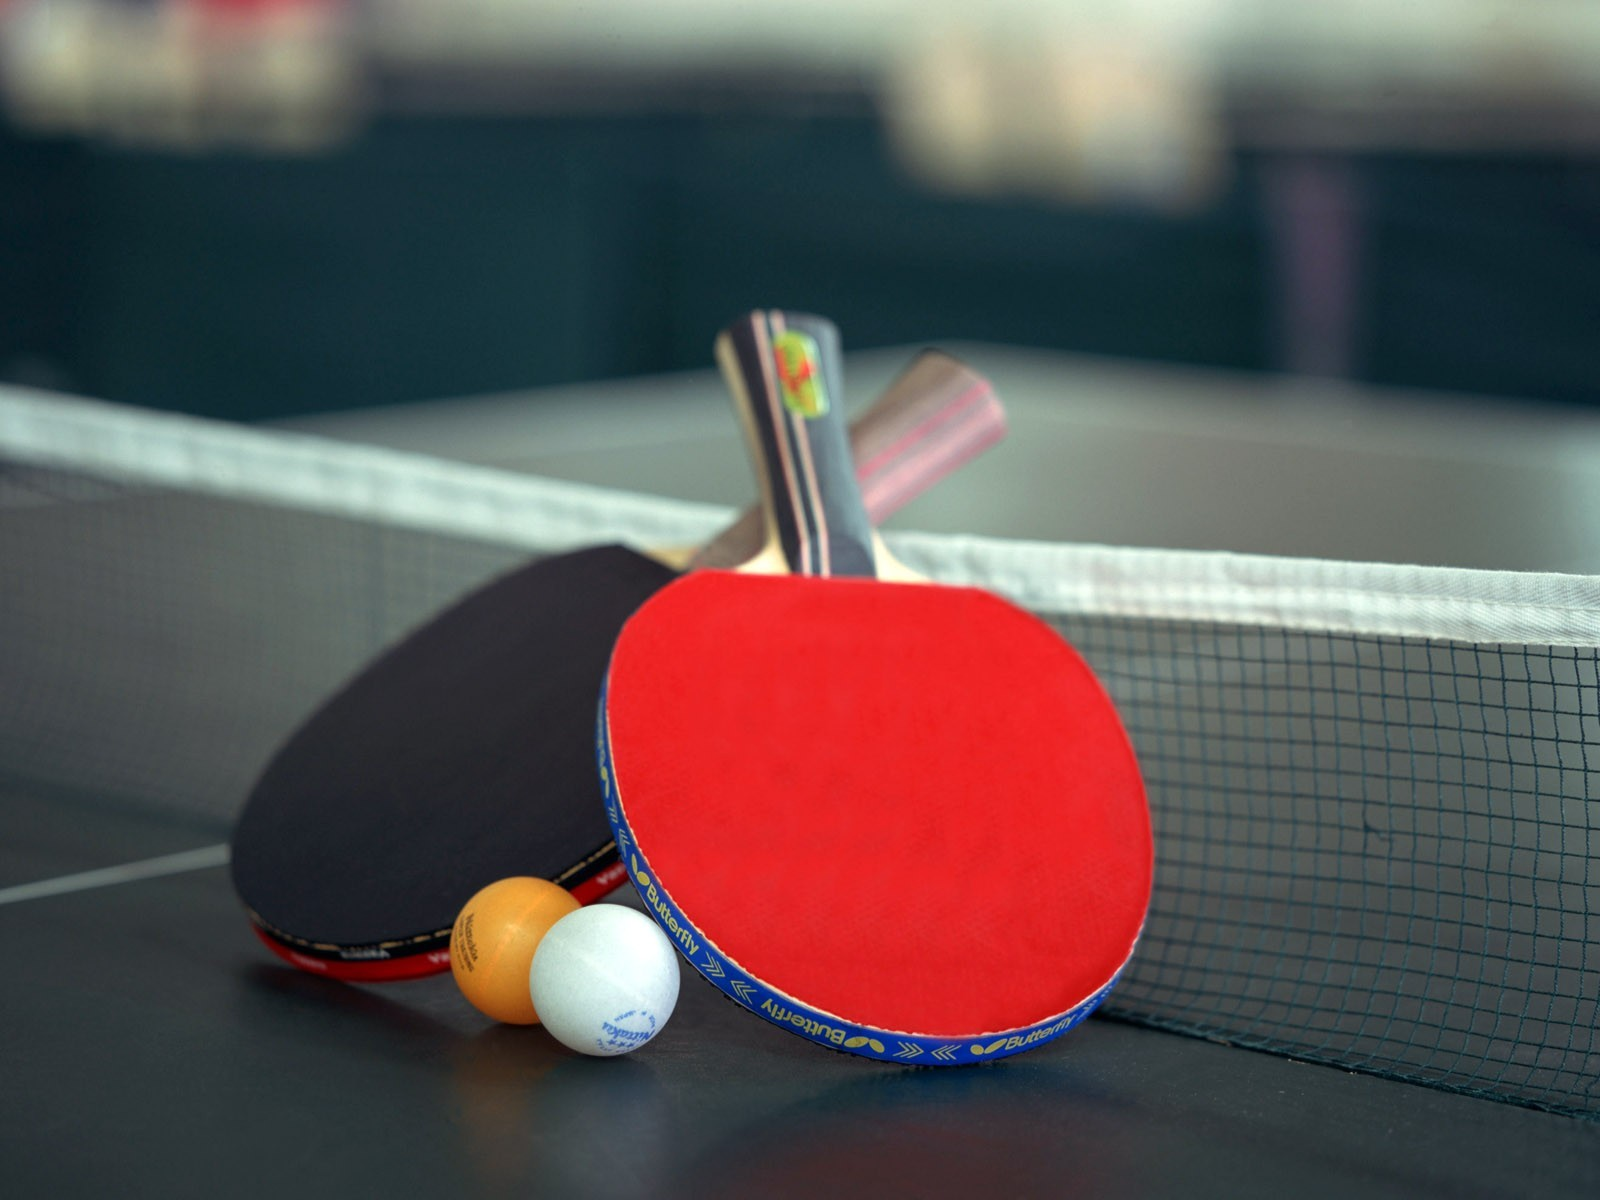 Sports ping pong table HD Wallpaper